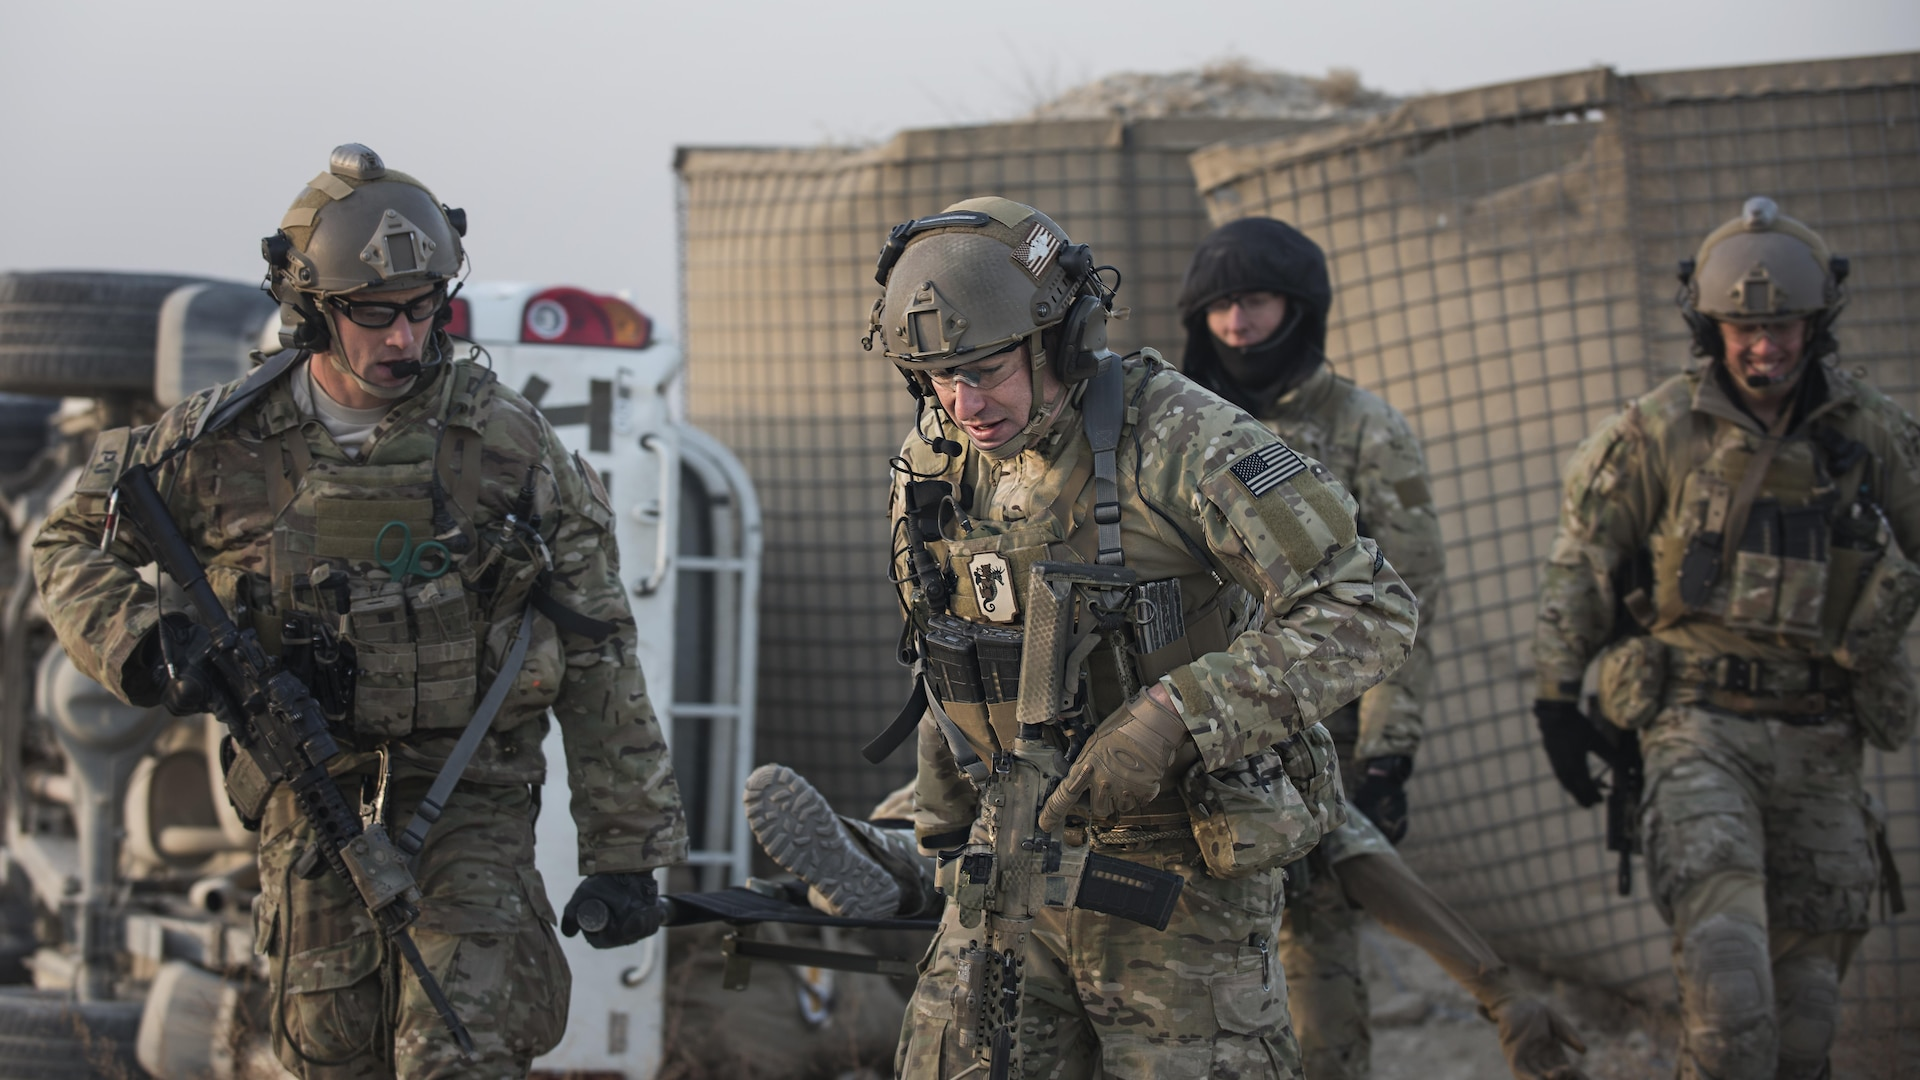 """""""Guardian Angels"""" of the 83rd Expeditionary Rescue Squadron carry a patient by litter for evacuation during a mass casualty exercise held Nov. 17, 2016 at Bagram Airfield, Afghanistan. Training scenarios are based on real-world situations that have been encountered in past operations. (U.S. Air Force photo by Staff Sgt. Katherine Spessa)"""